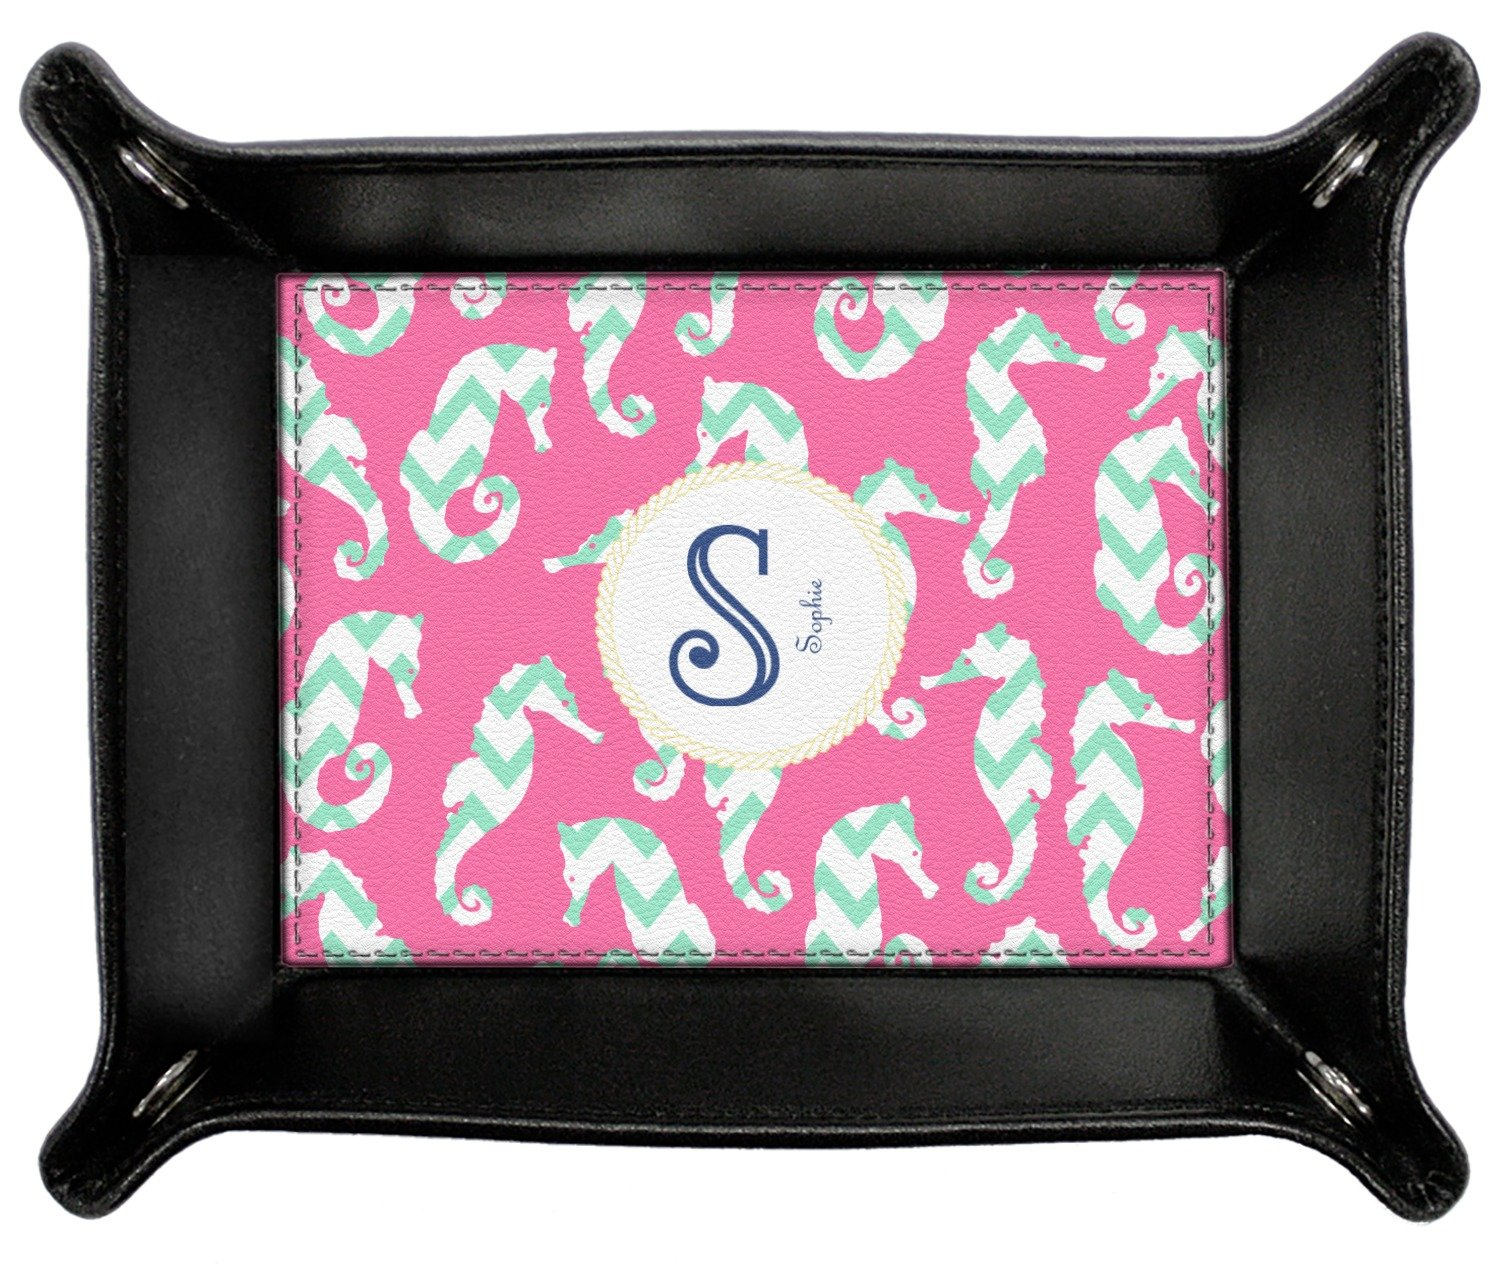 Sea Horses Genuine Leather Valet Tray (Personalized)